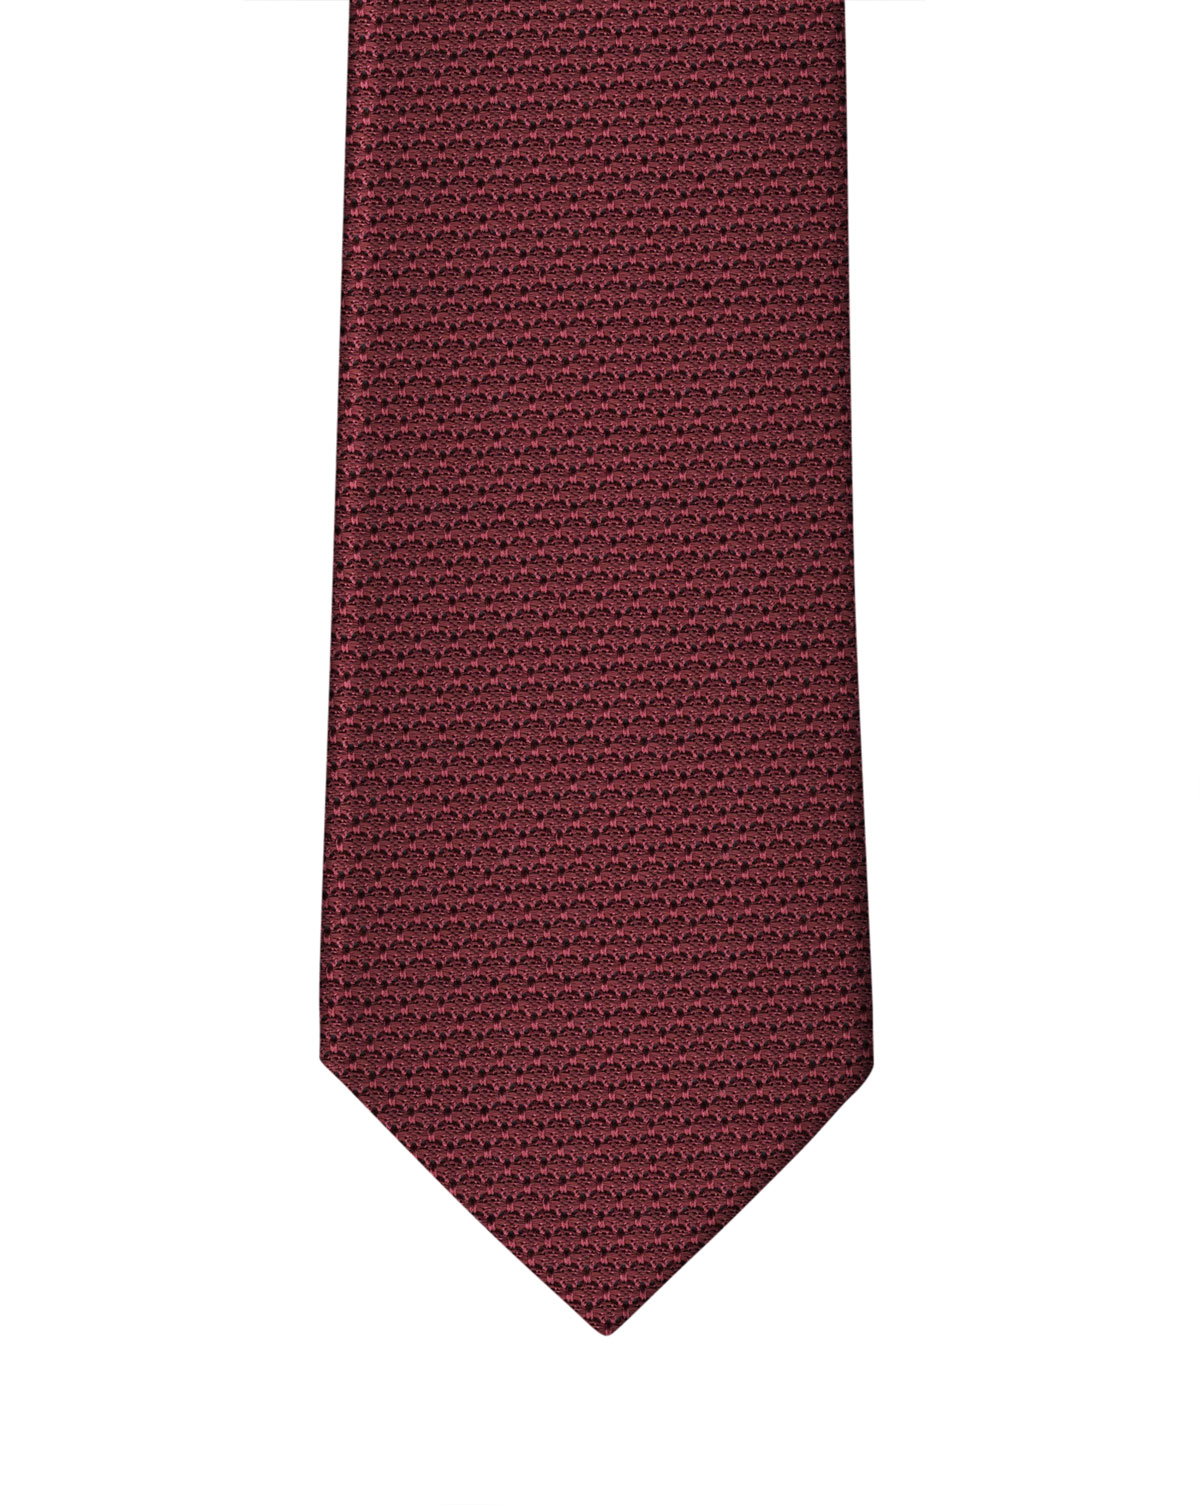 Red Grenadine Necktie